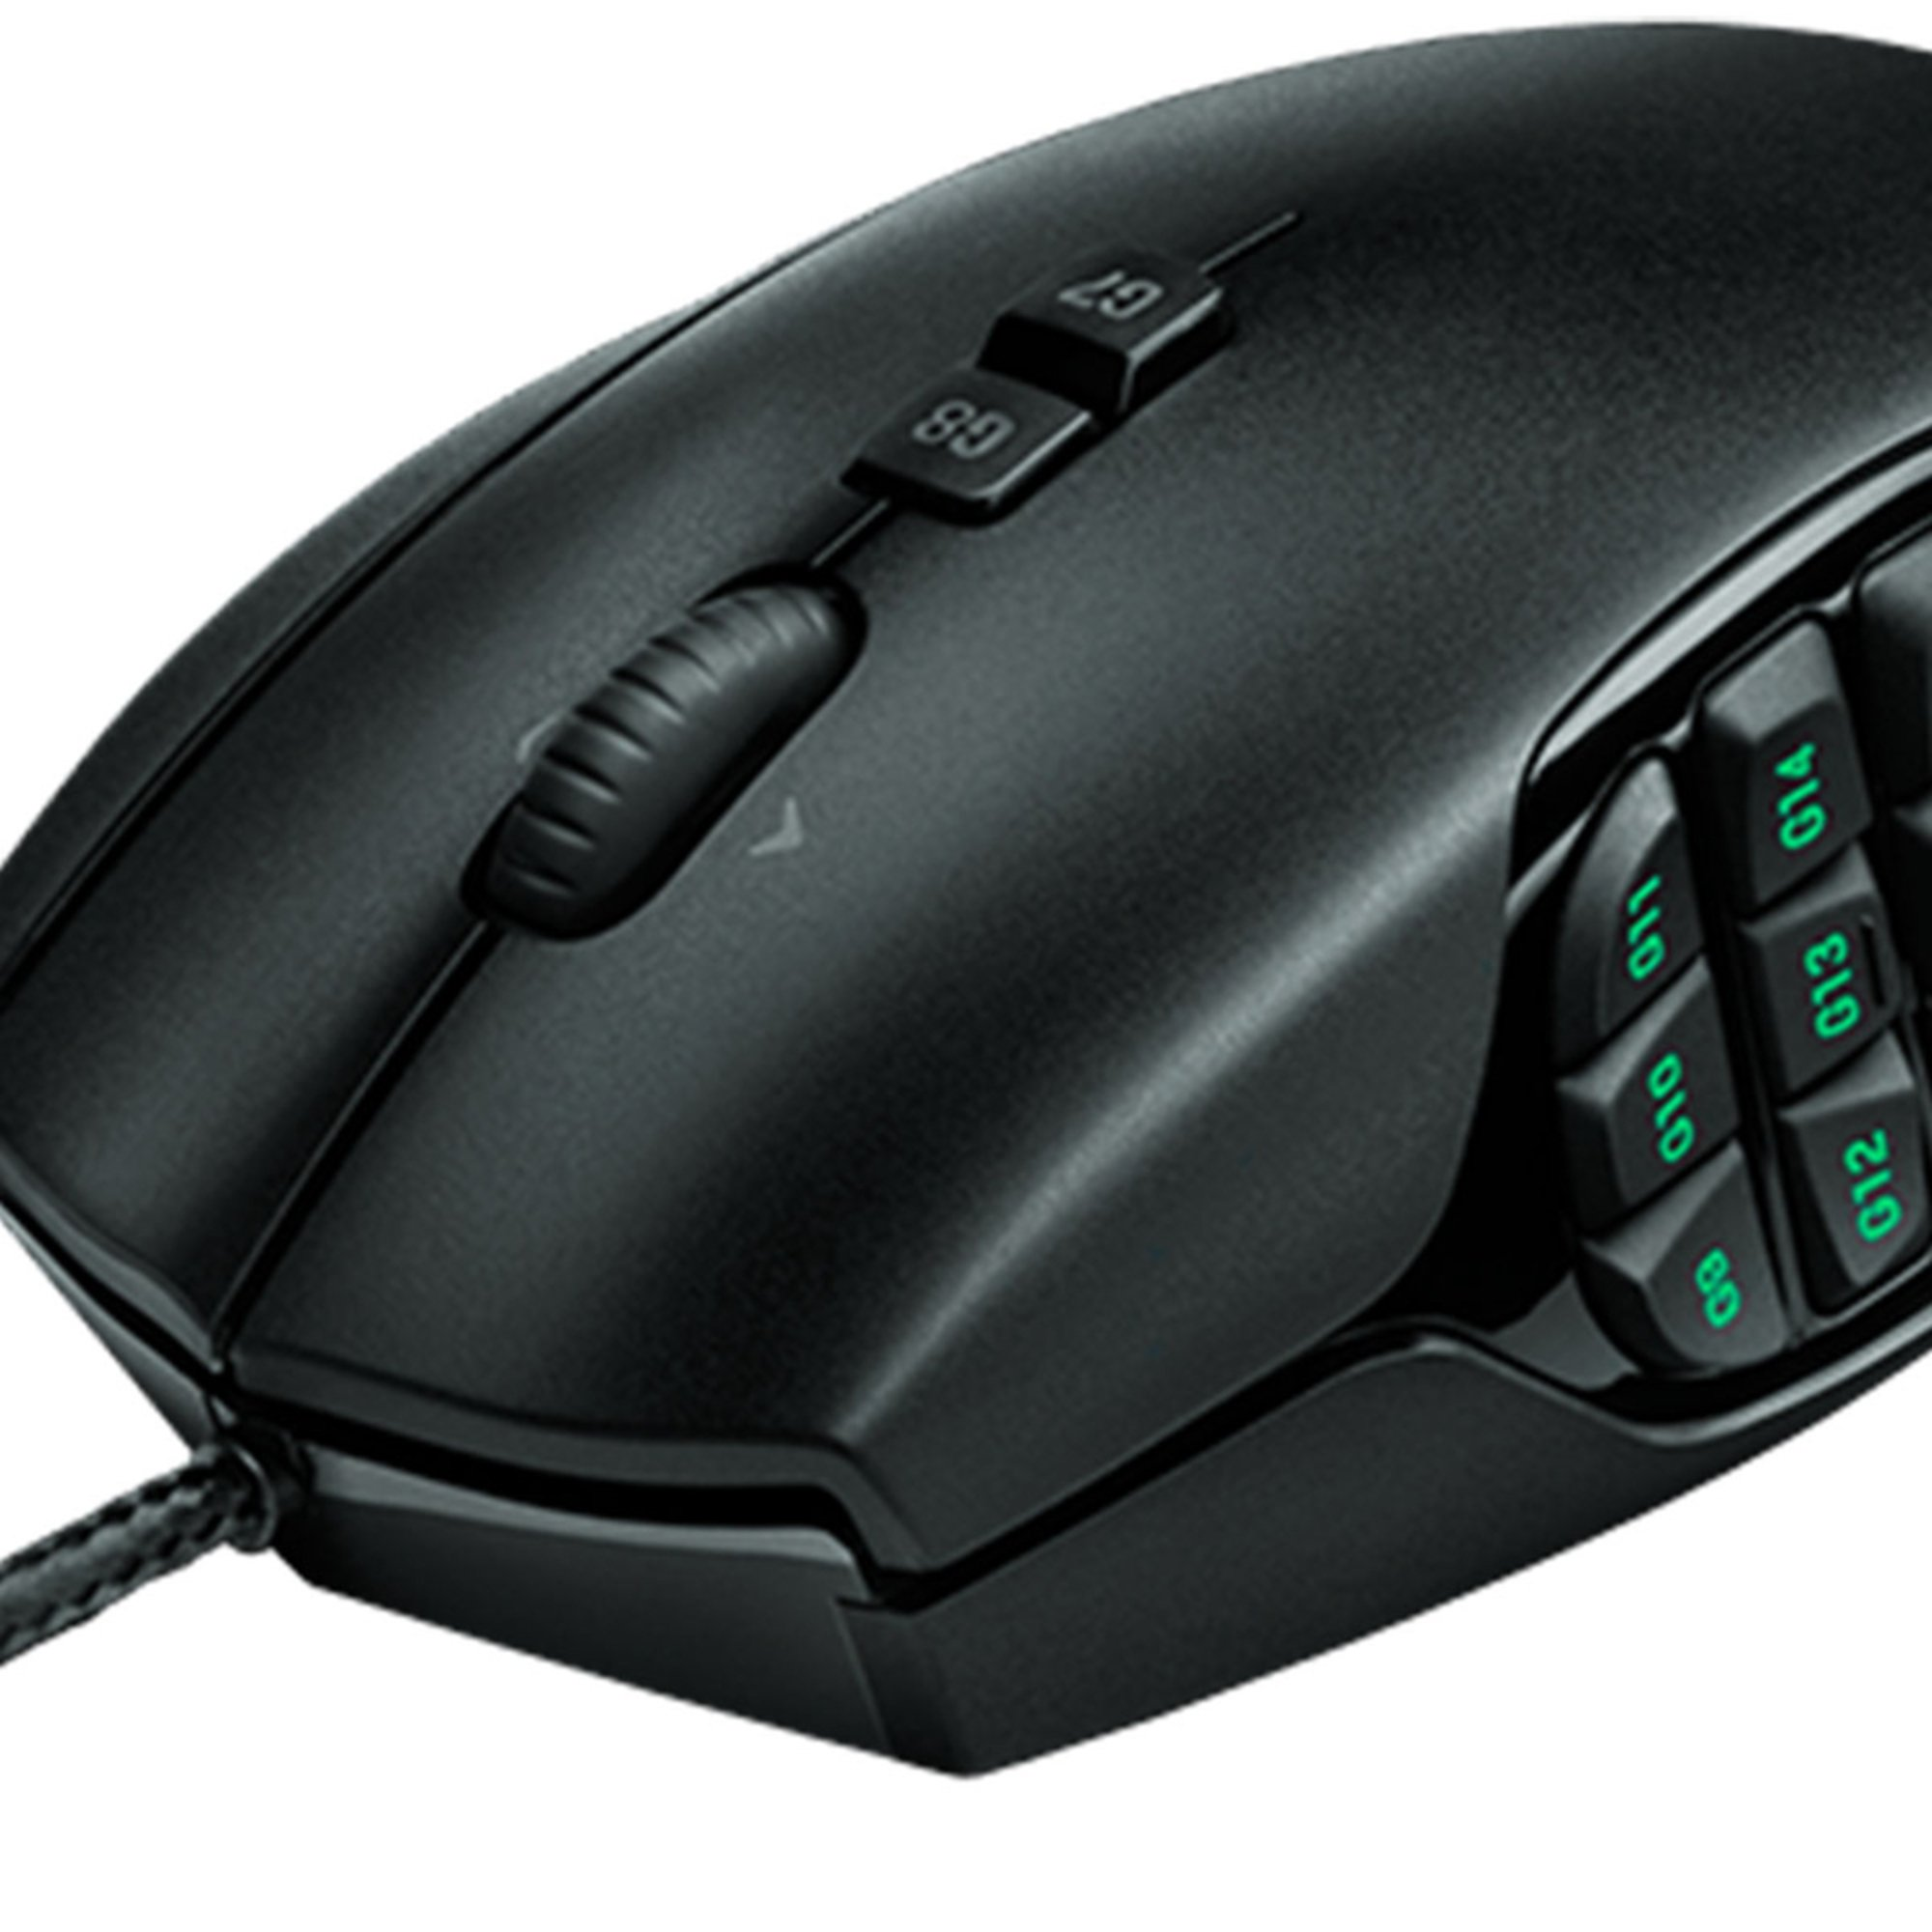 Logitech G600 Mmo Gaming Mouse | Mice & Keyboards